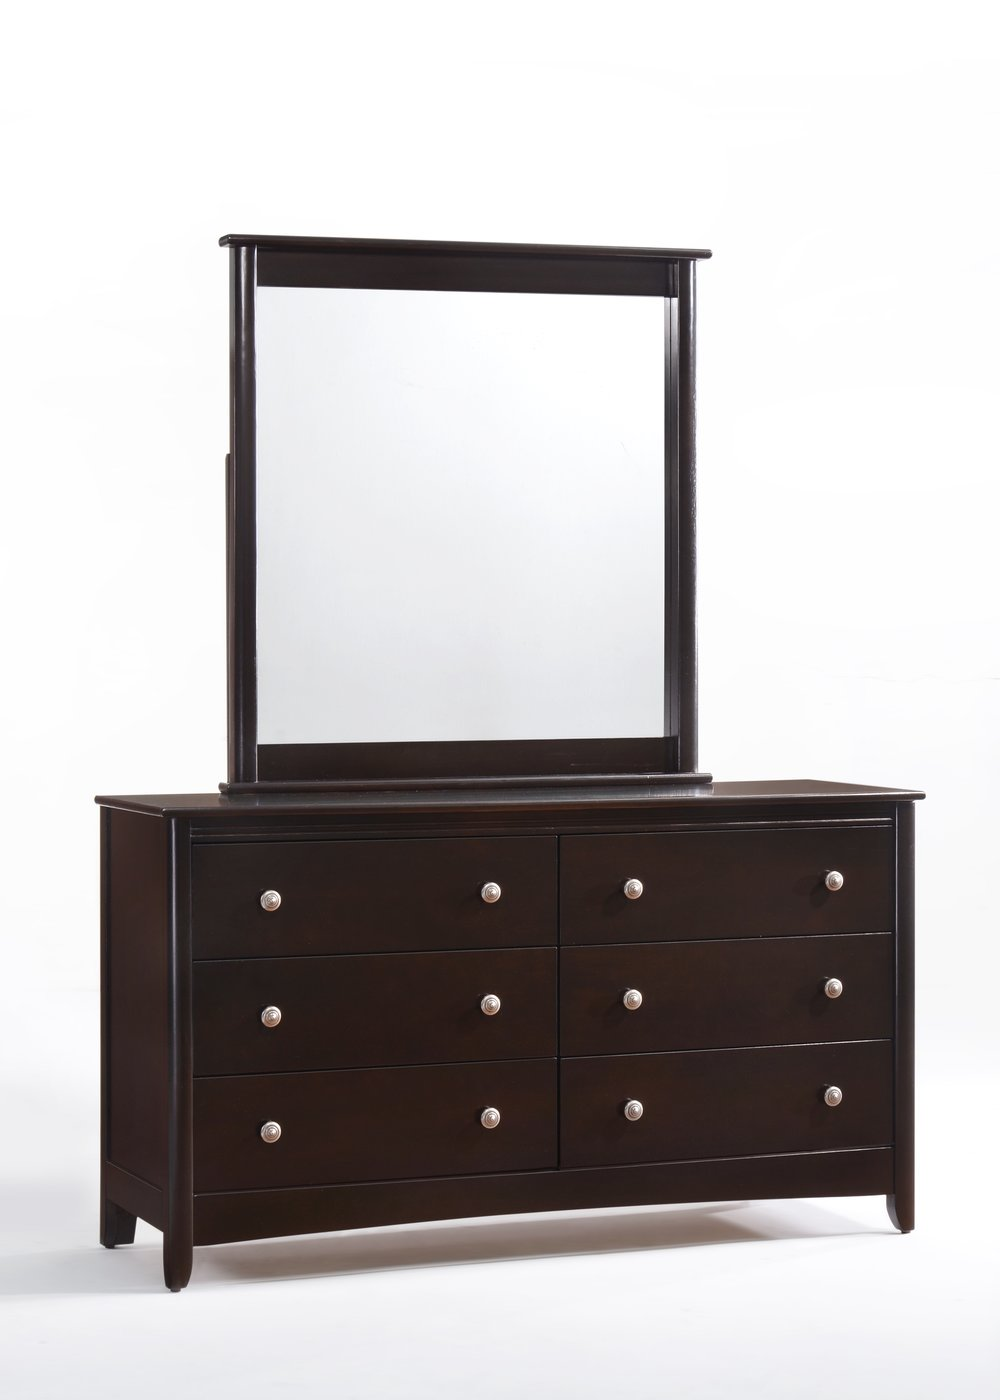 Secrets 6 Drawer Dresser & Mirror Dark Chocolate.jpg